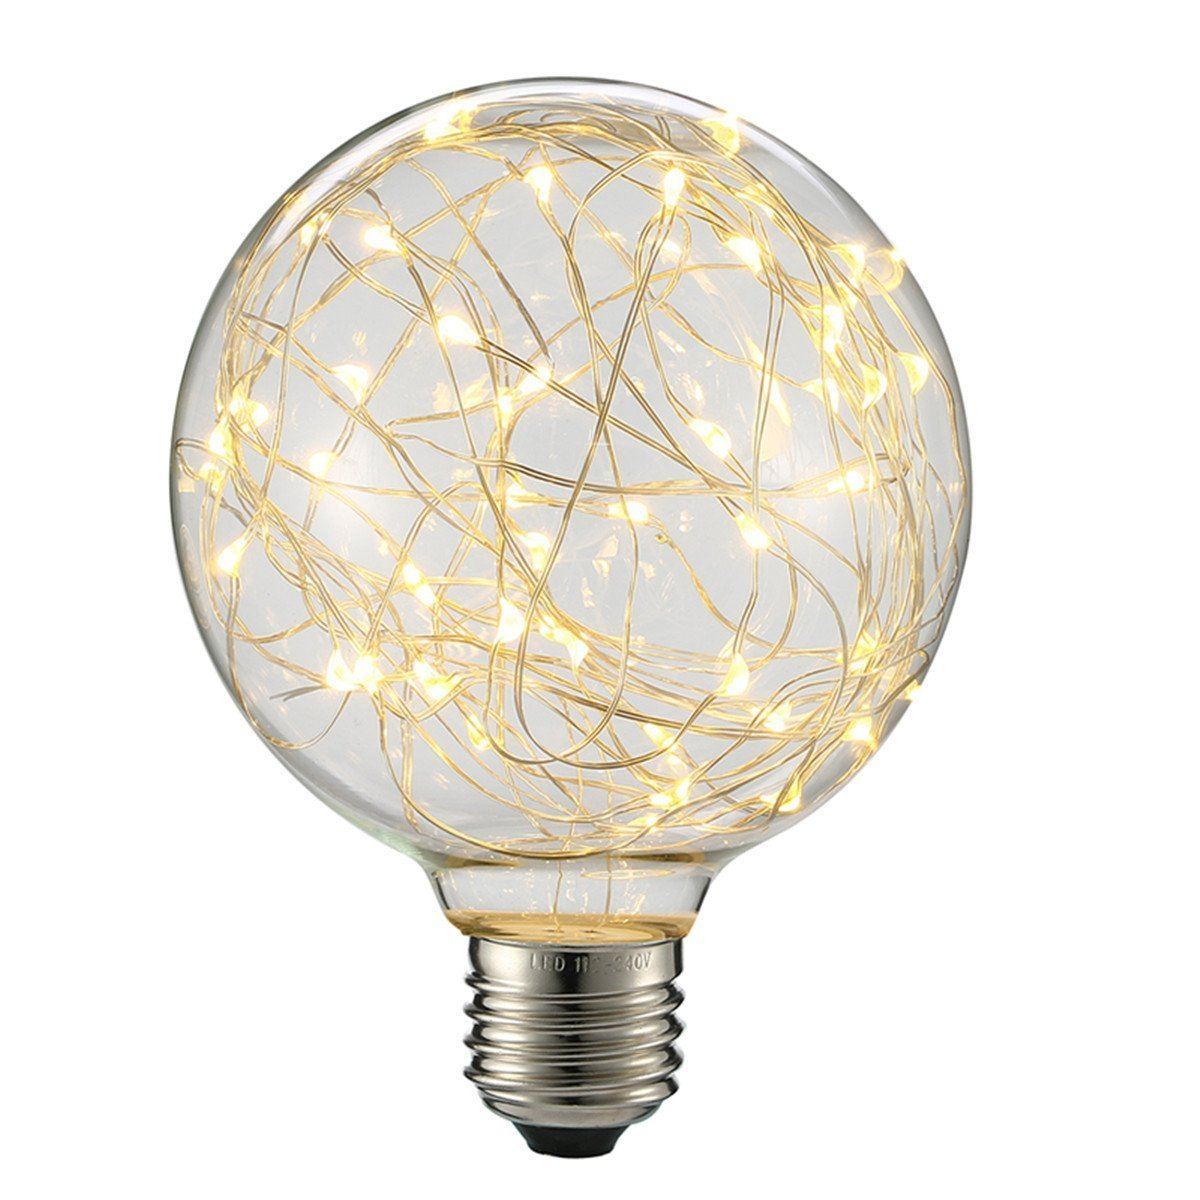 KINGSO G95 Vintage Edison Bulb,E27 Base 3W 300LM Antique Filament Globe Spiral Design LED Lights for Christmas Home Party Cafes Bars Decoration Warm White 0